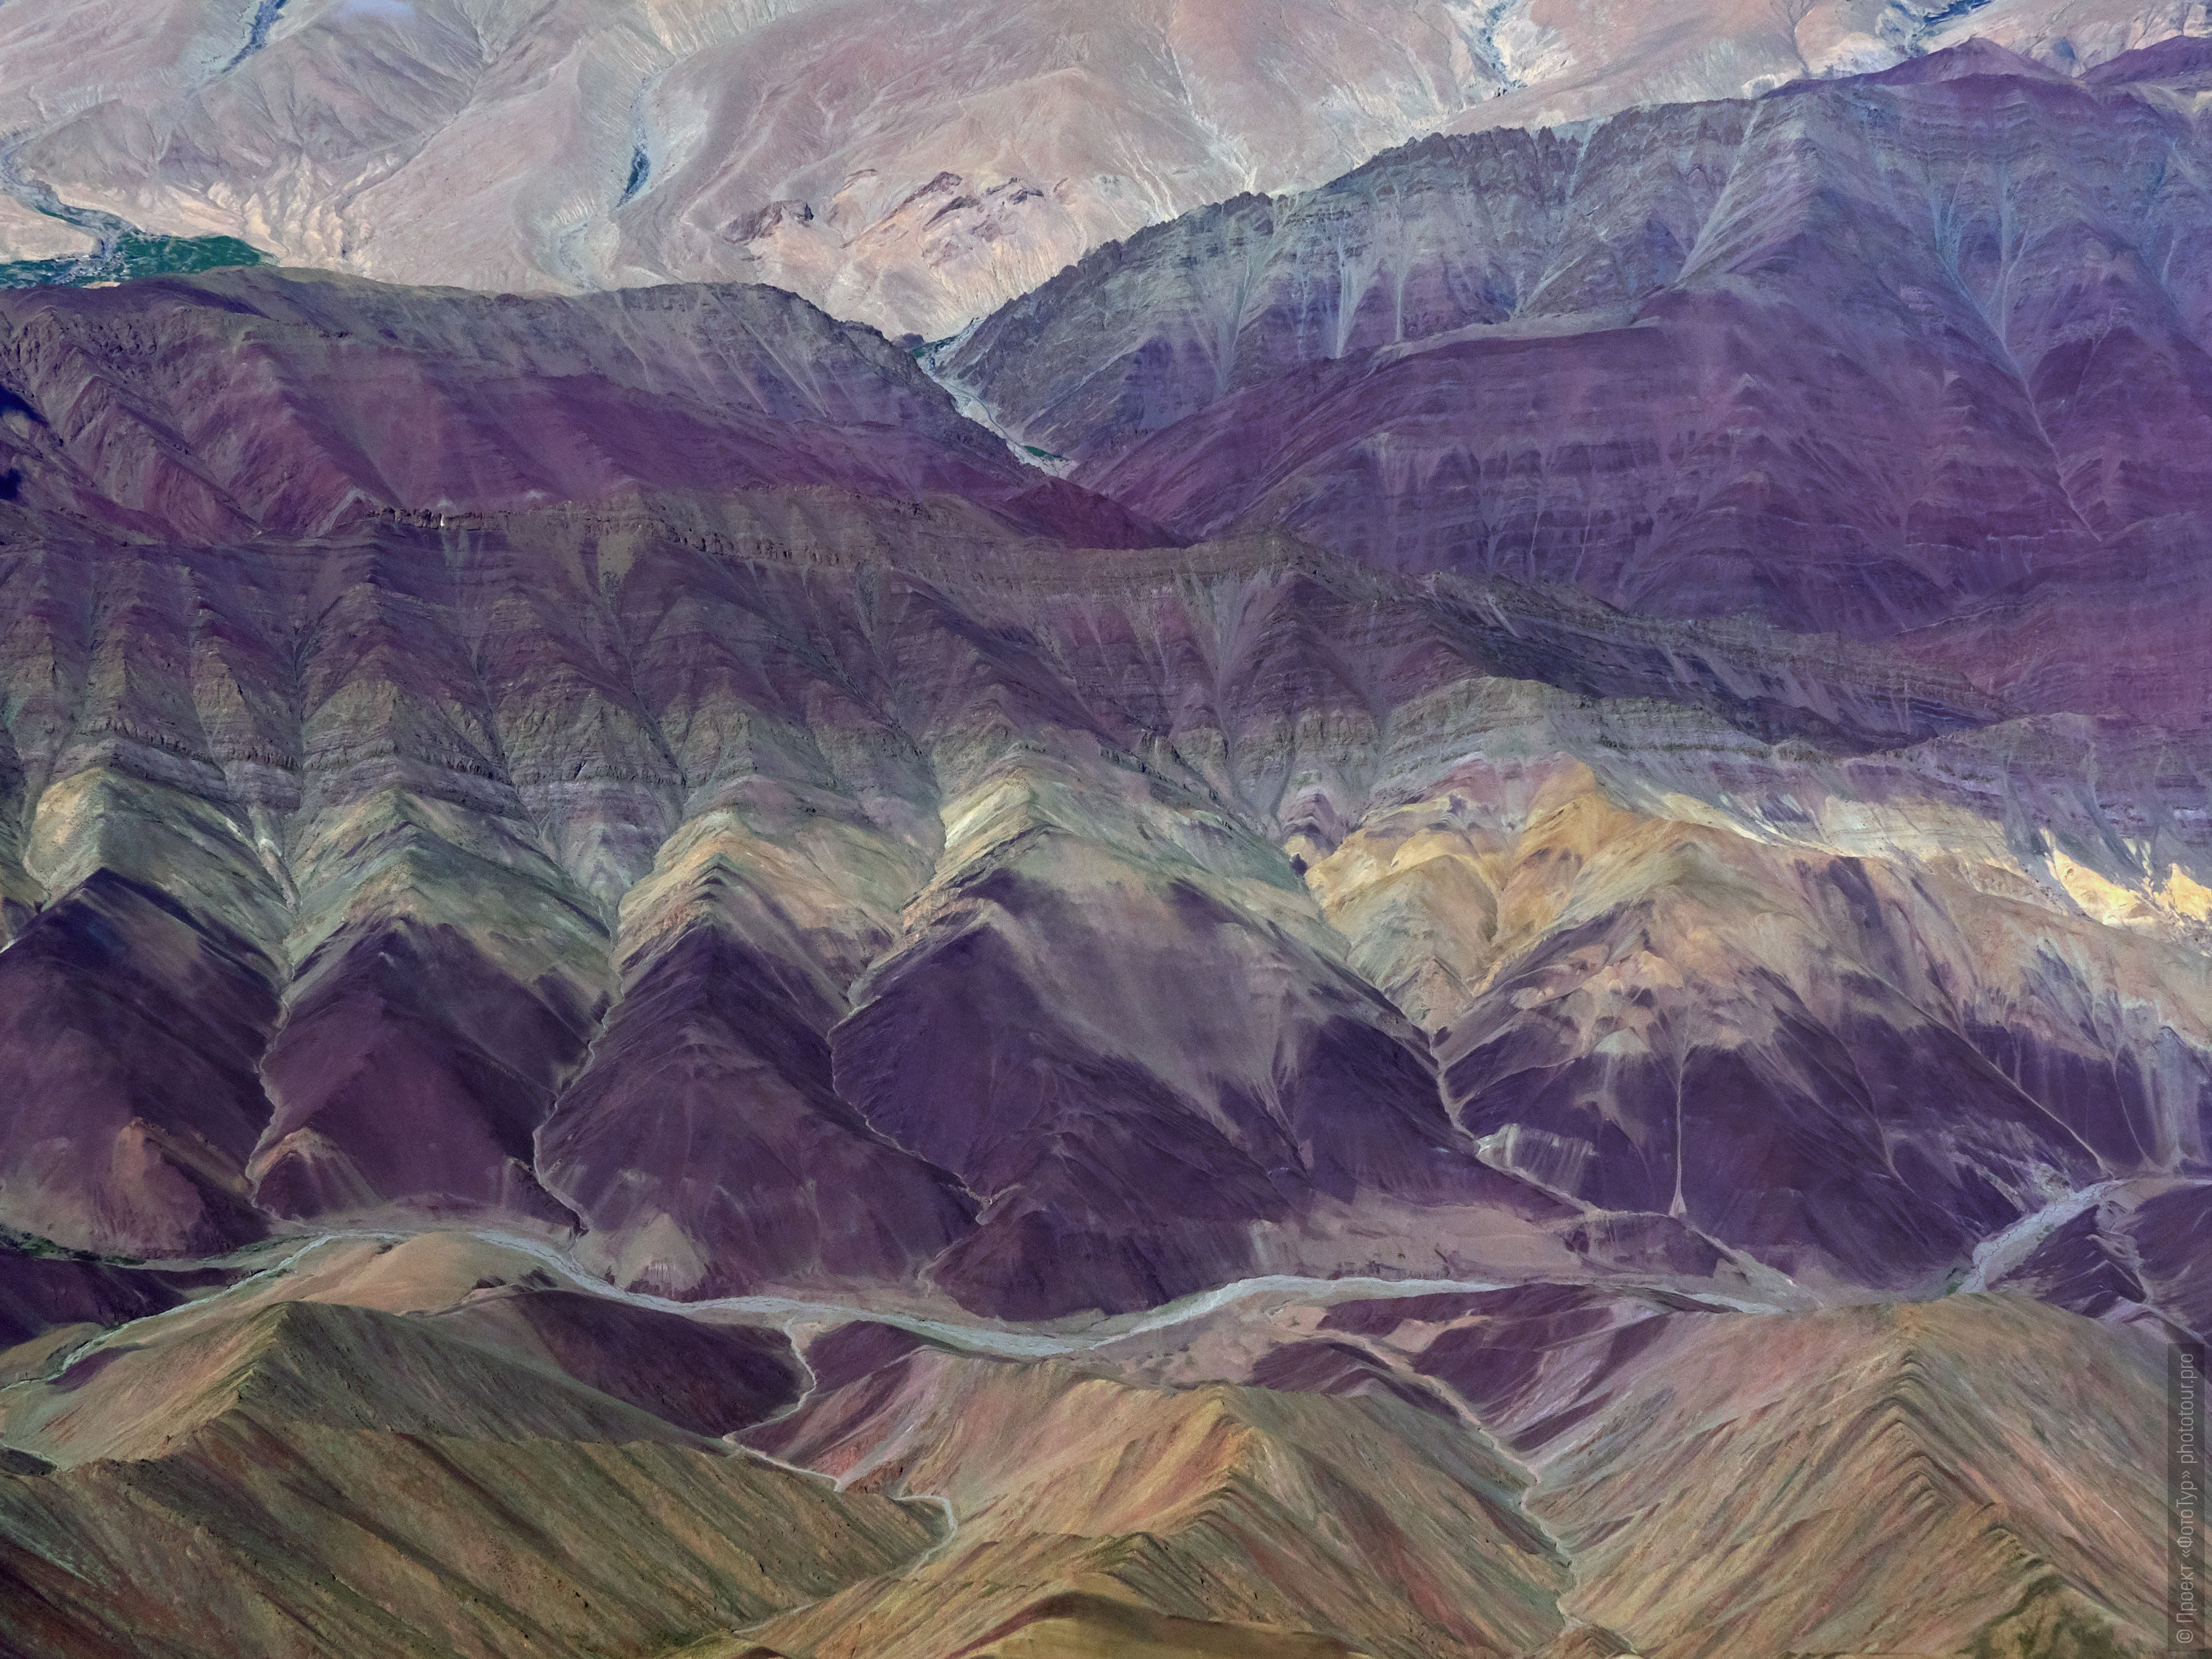 Abstract pictures of the purple mountains of Ladakh. Expedition Tibet Lake-2: Pangong, Tso Moriri, Tso Kar, Tso Startsapak, Leh-Manali highway.